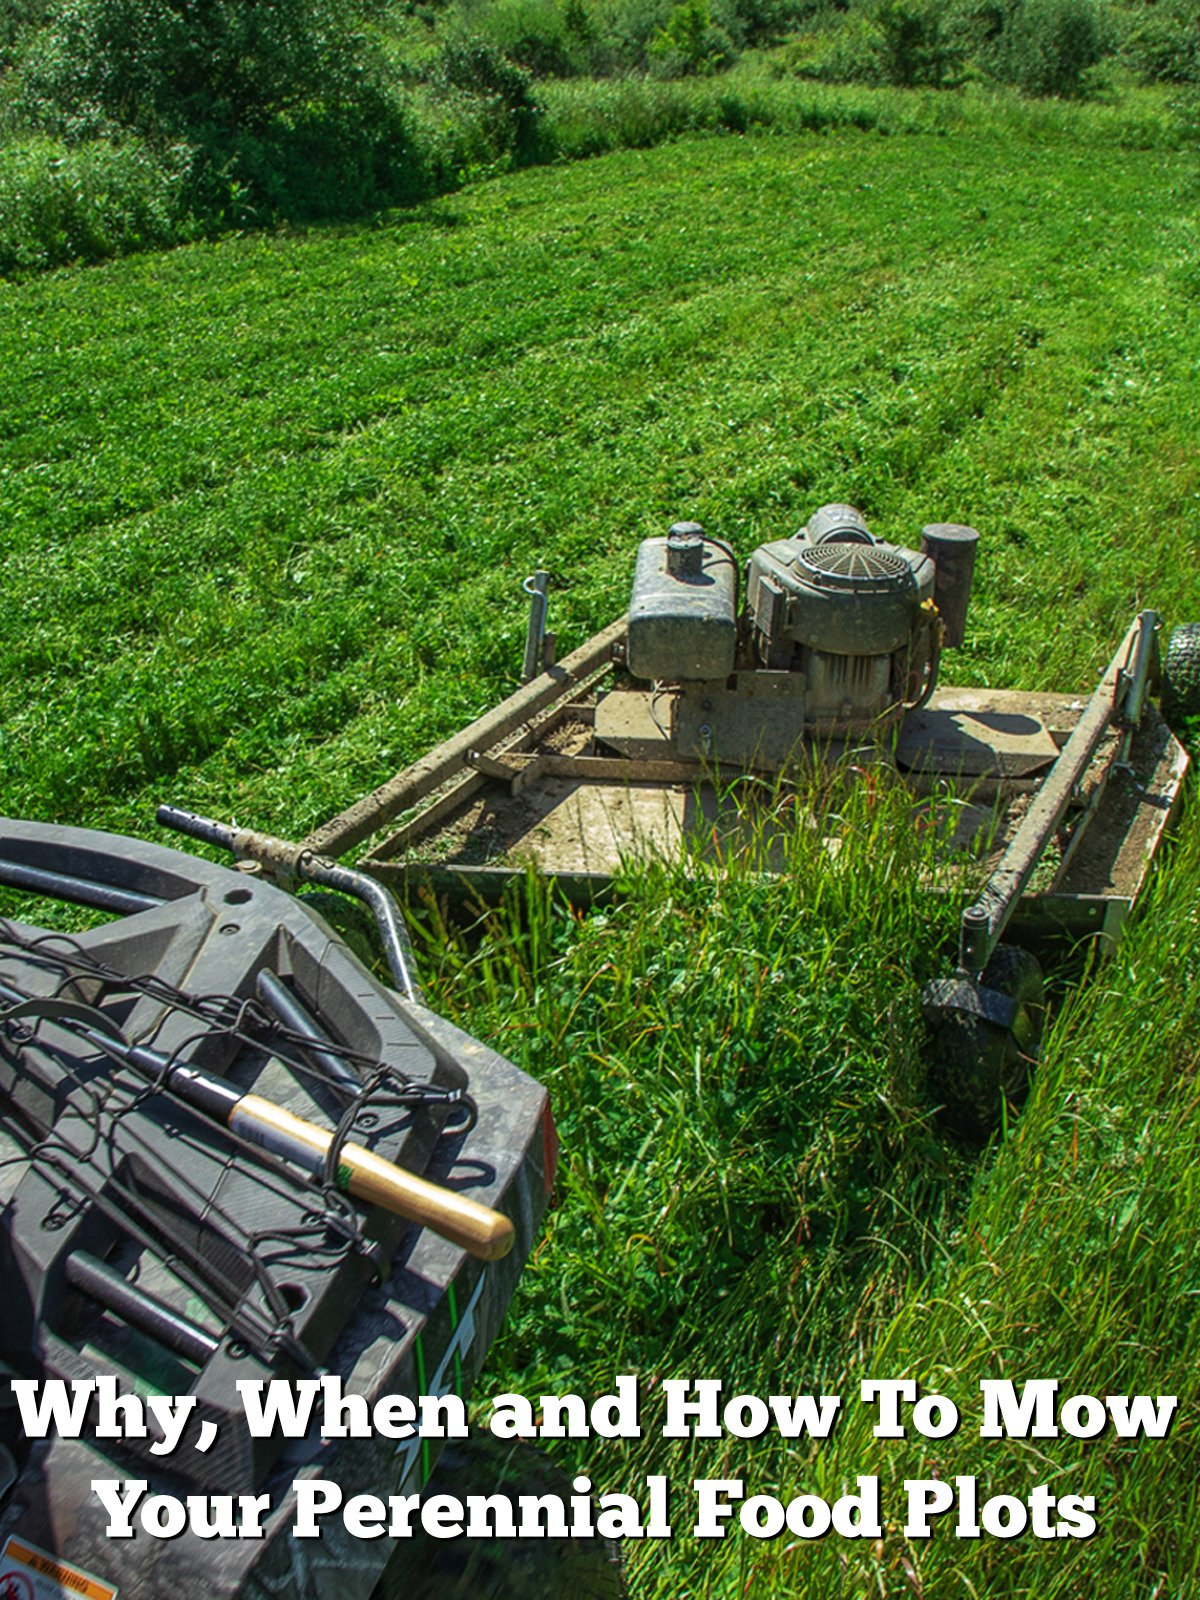 Why, When and How To Mow Your Perennial Food Plots